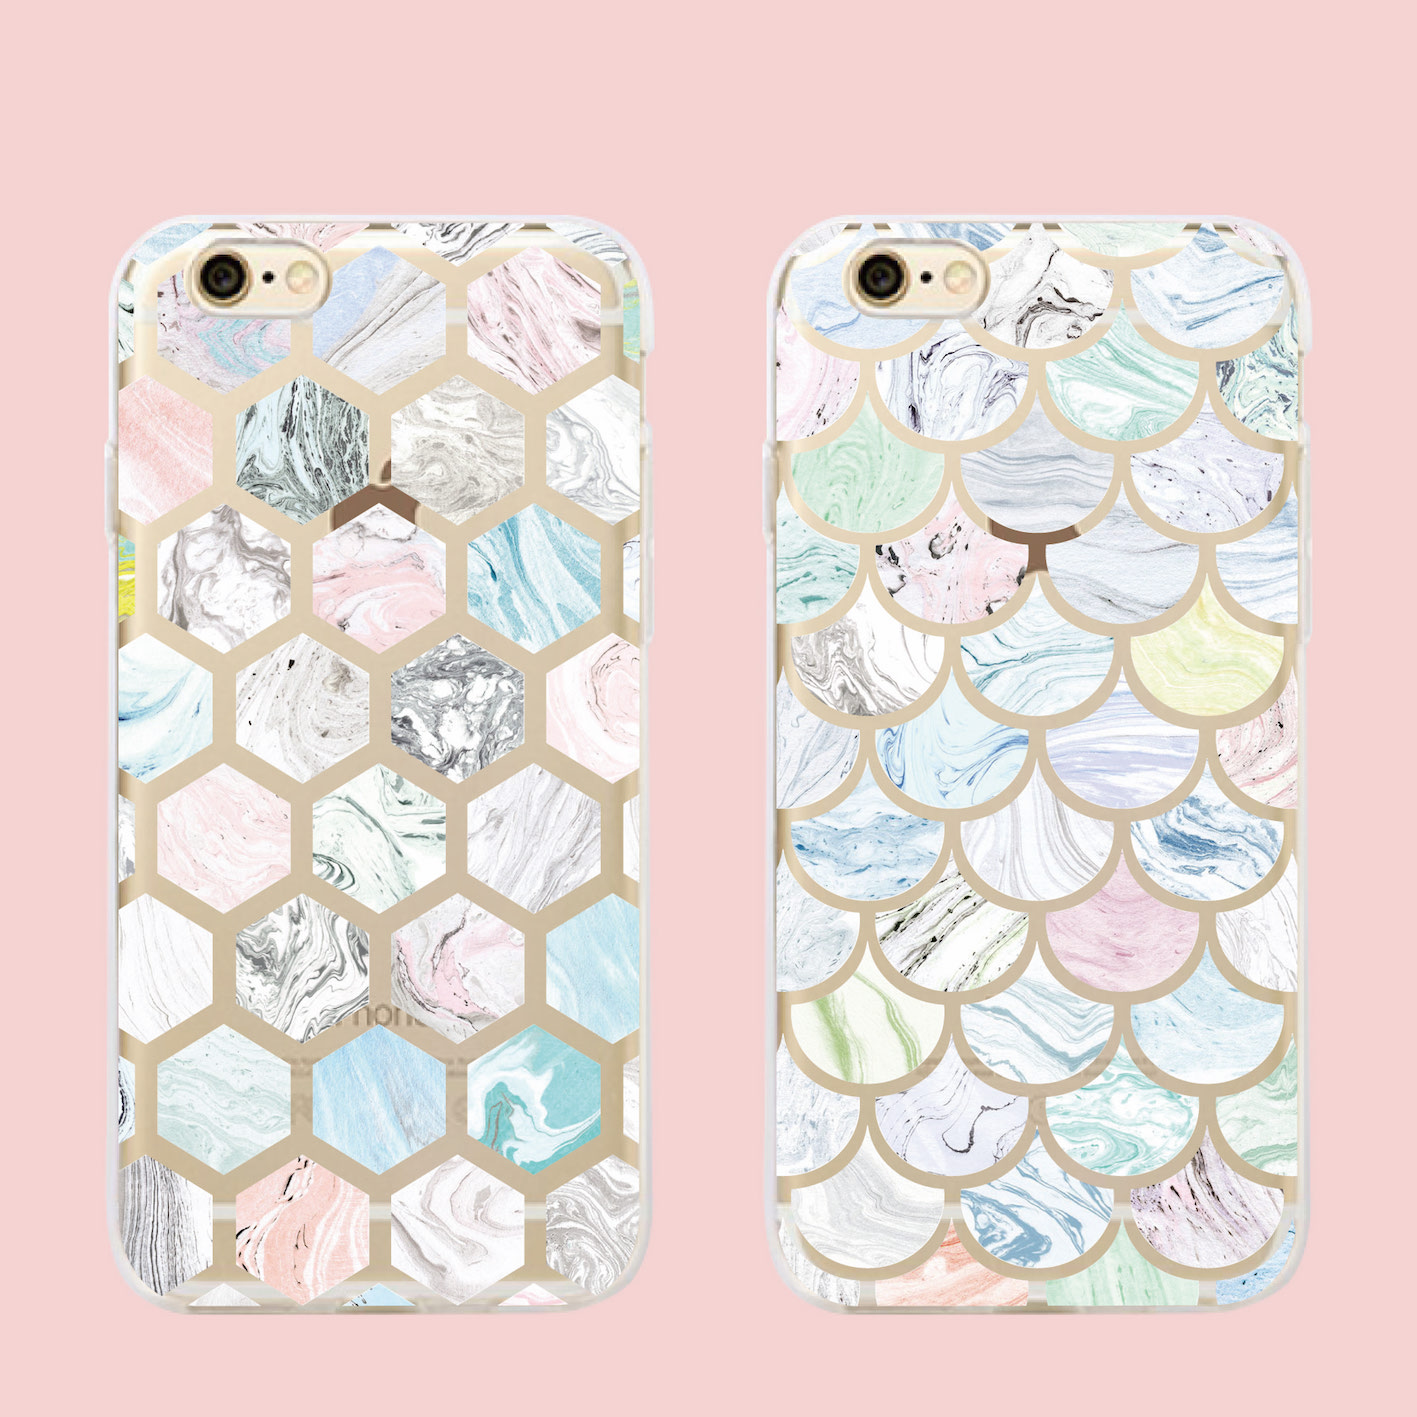 iphone 7 phone case pattern